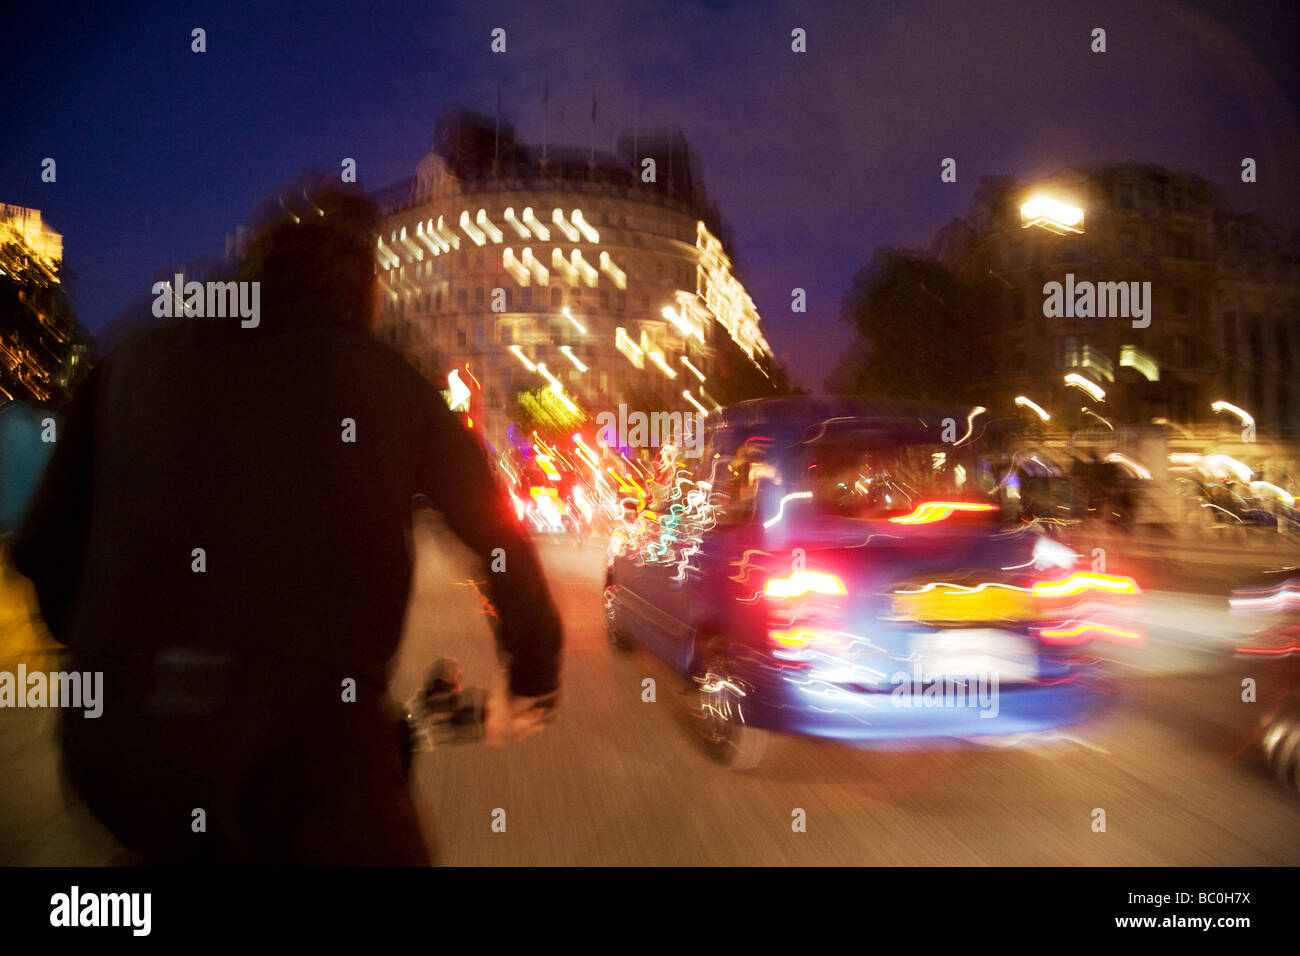 deliberately-blurred-london-taxi-at-nigh